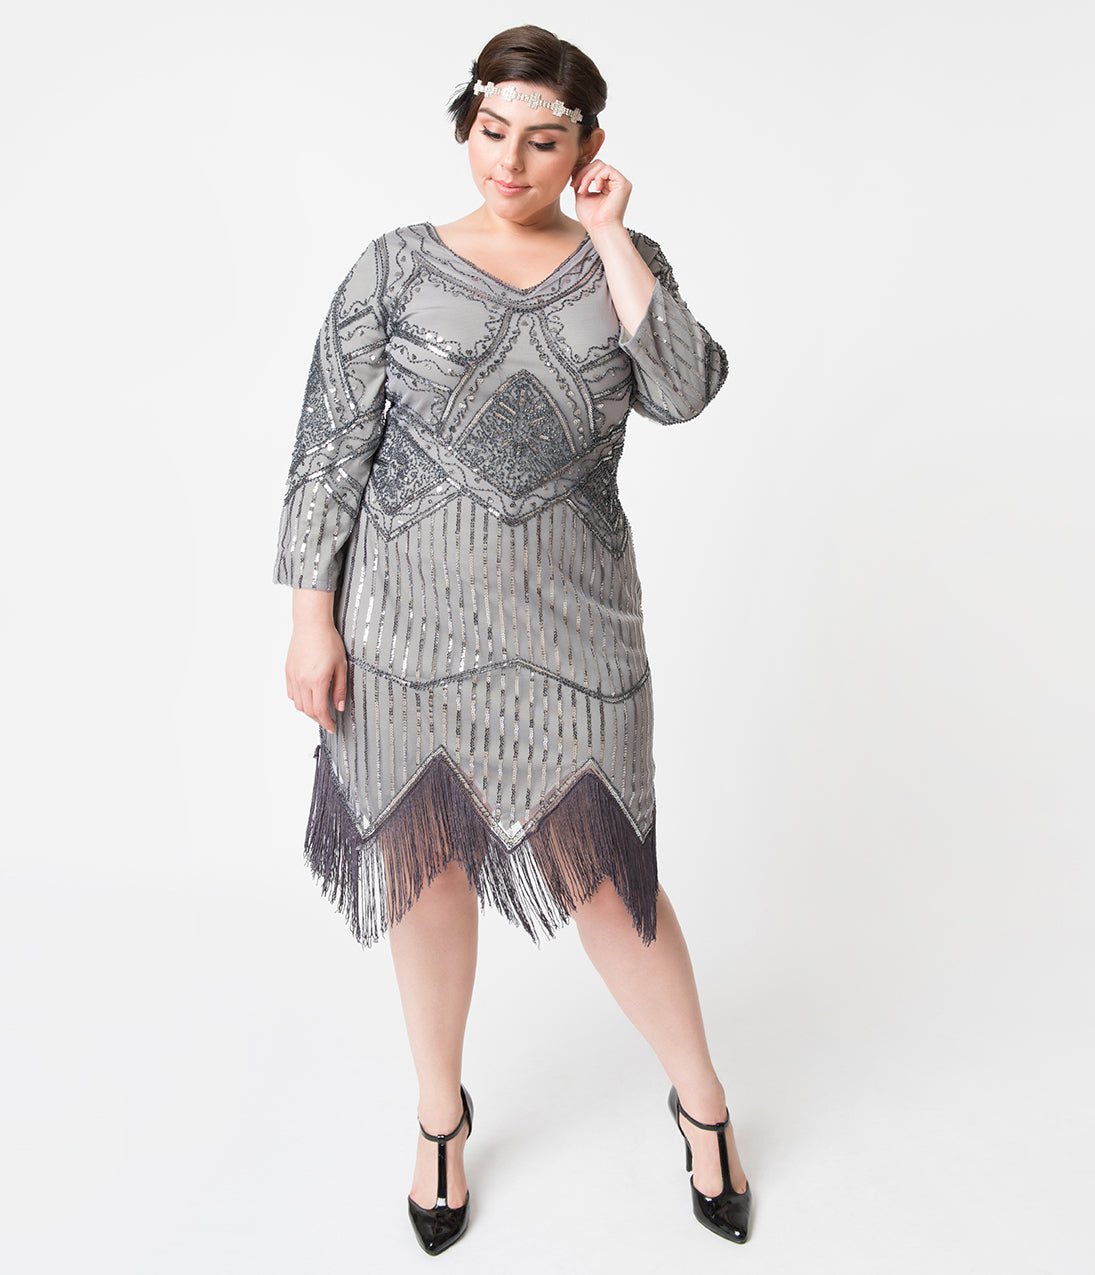 1920s Plus Size Flapper Dresses, Gatsby Dresses, Flapper Costumes